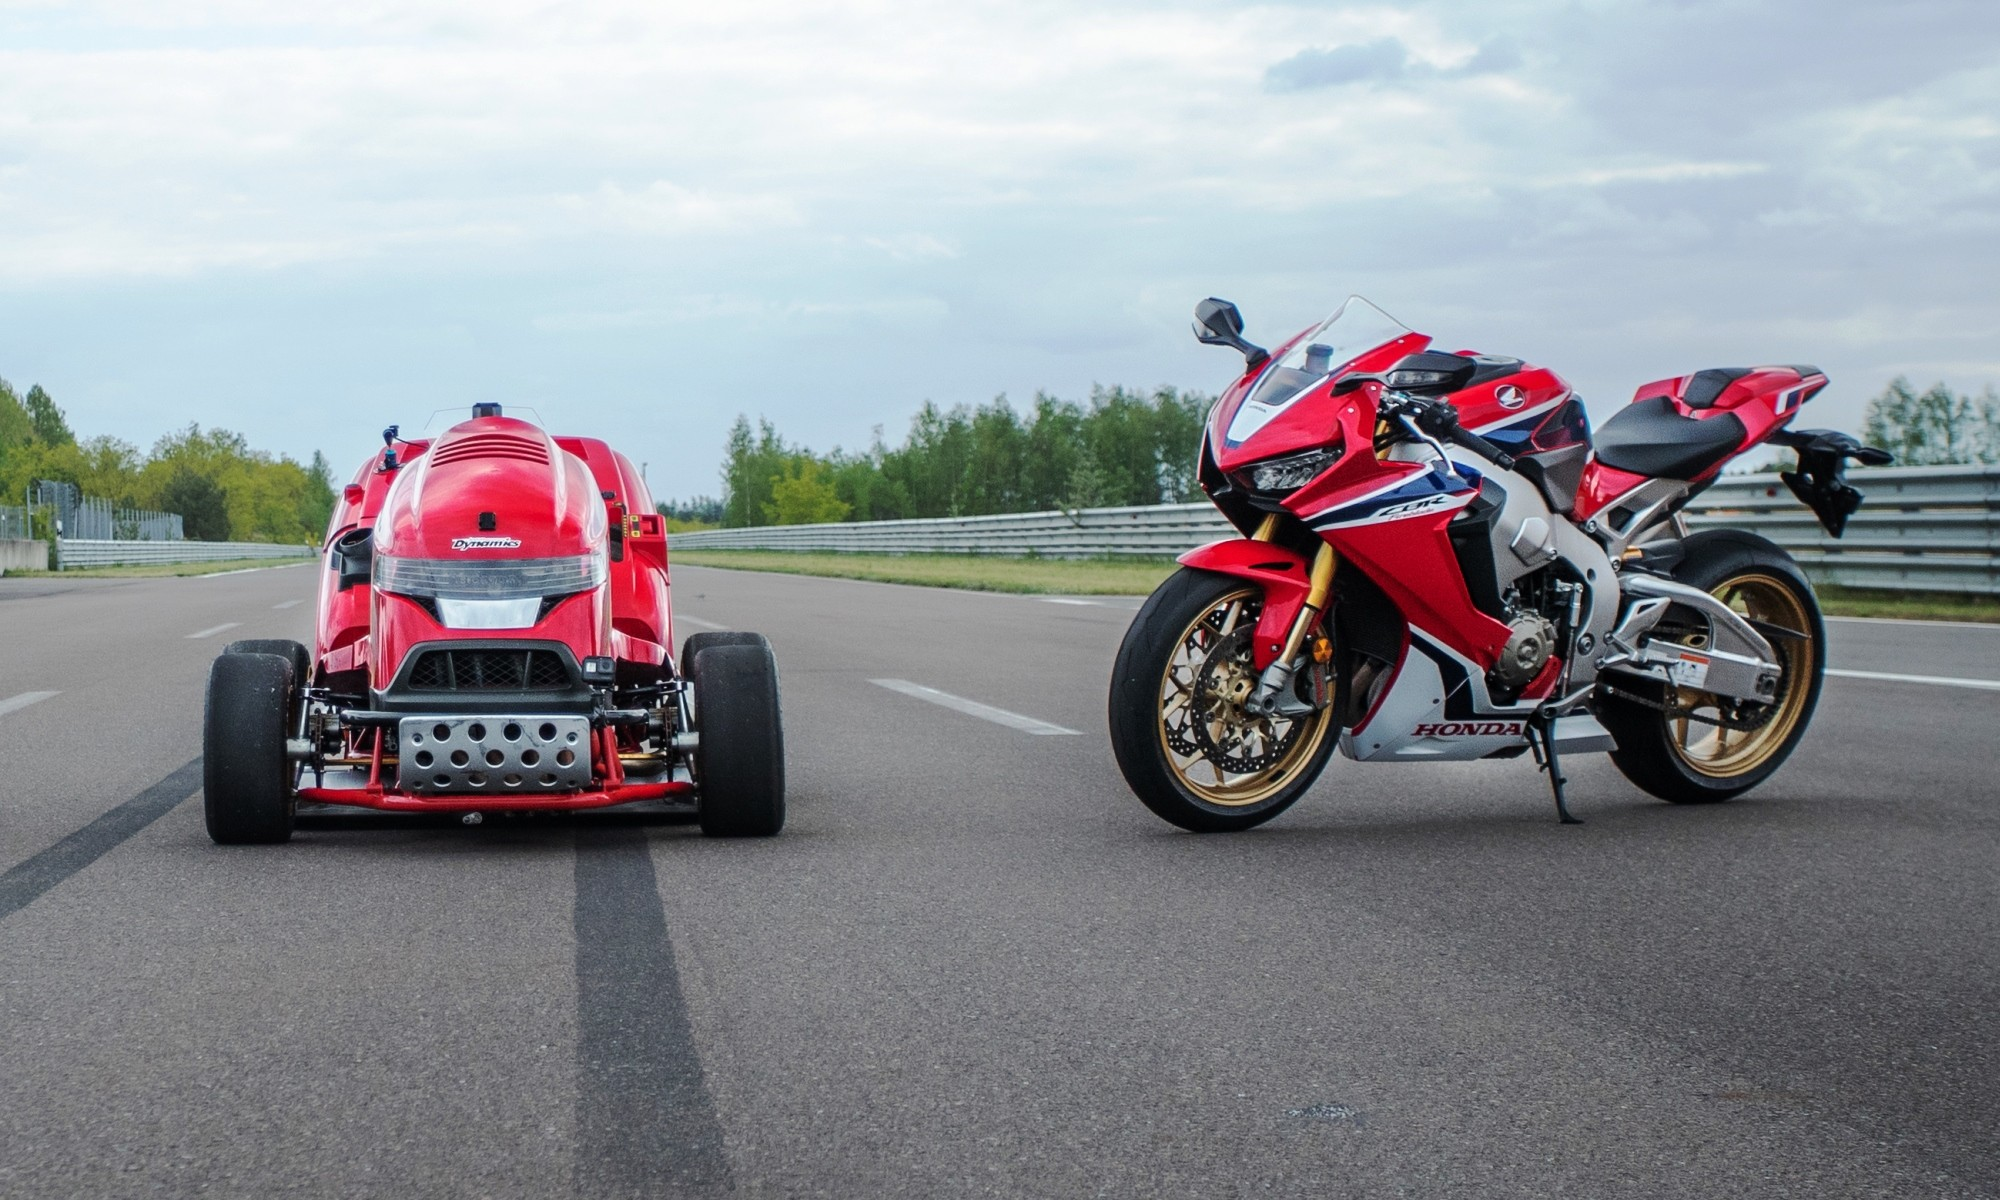 Honda Mean Mower and Fireblade